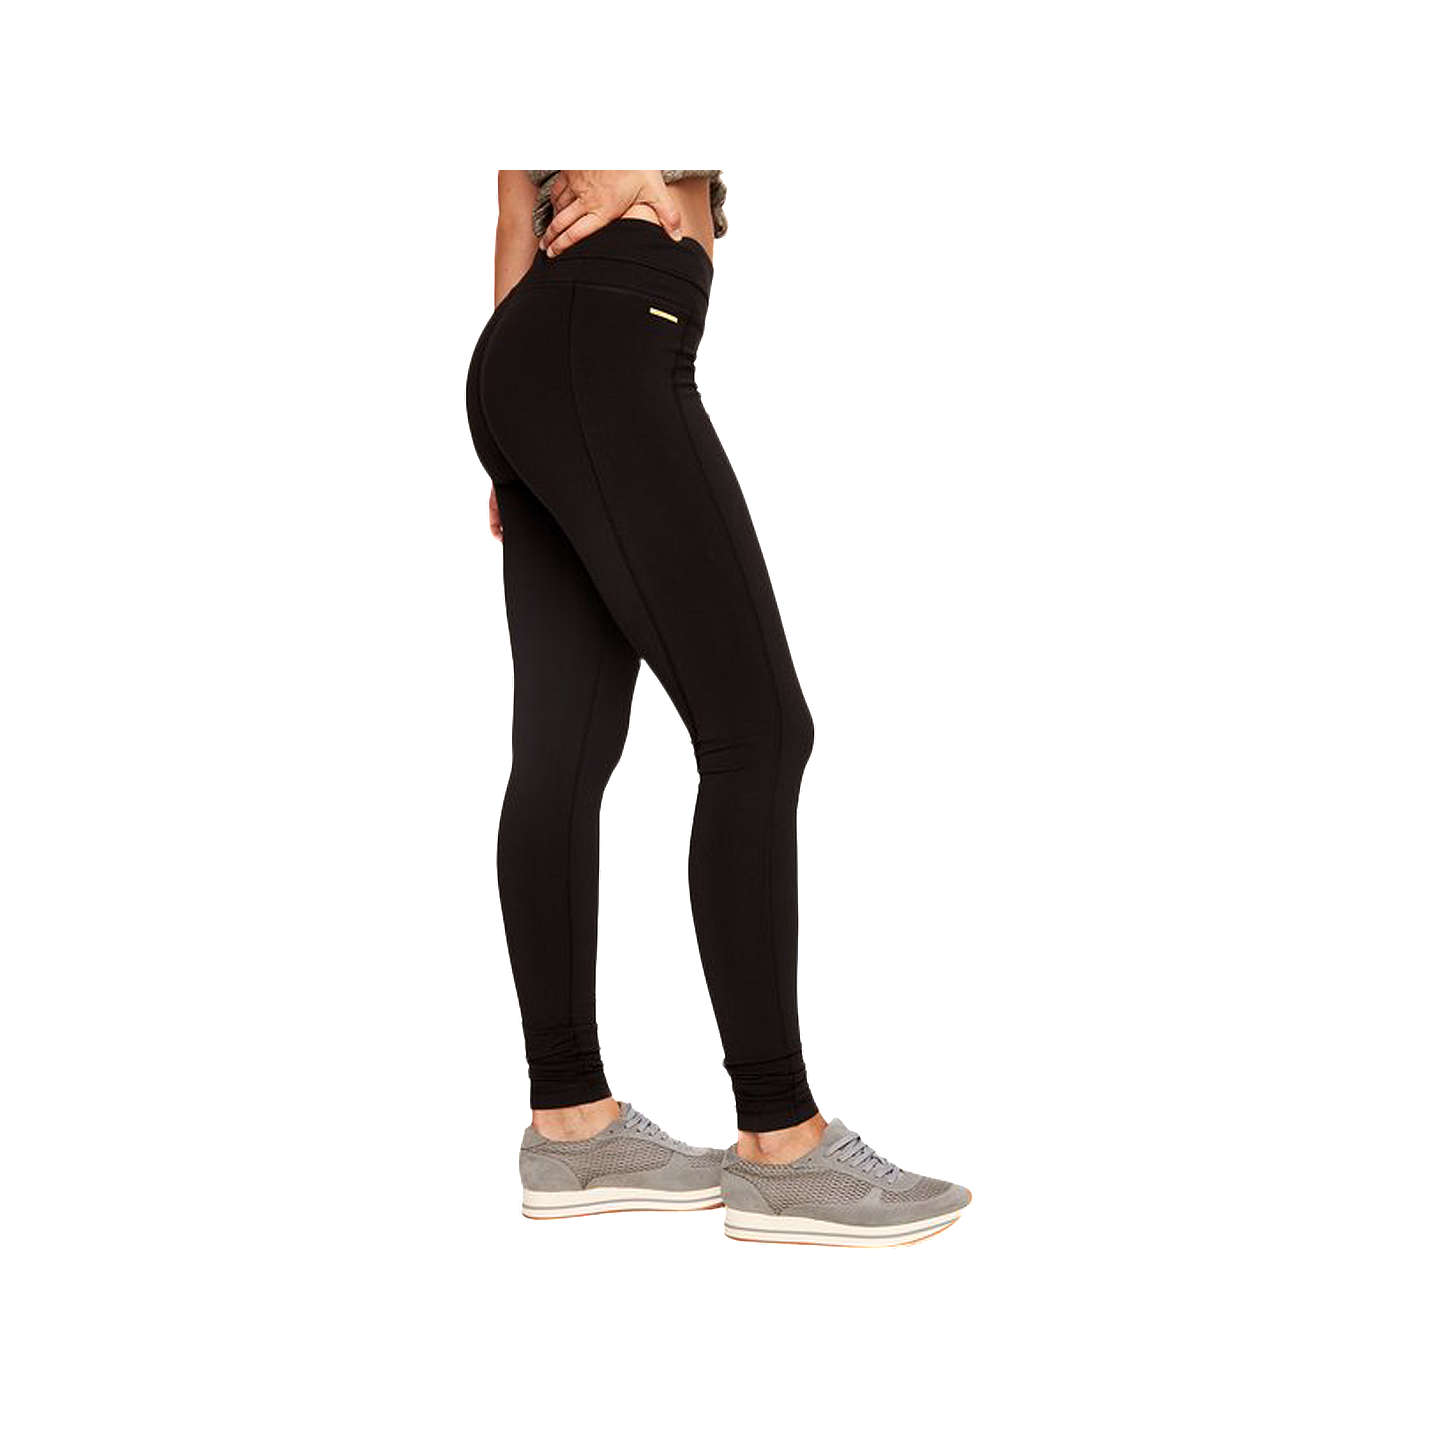 Offer: Lolë Motion Yoga Leggings, Black At John Lewis